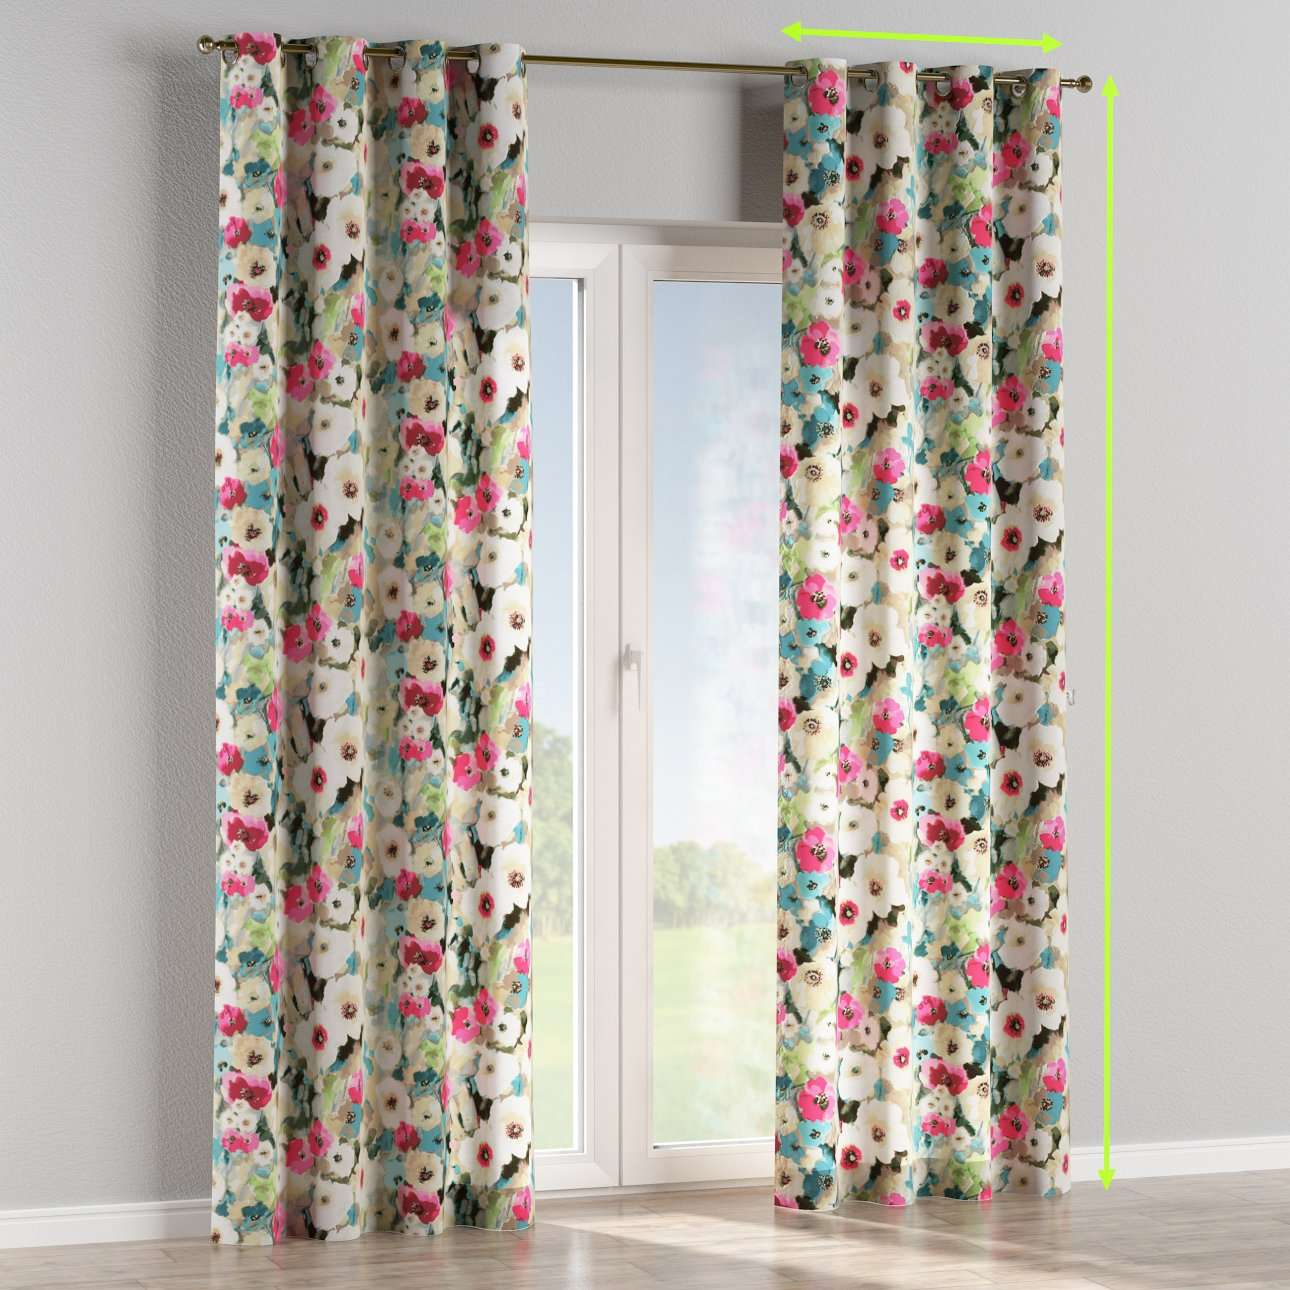 Eyelet lined curtains in collection Monet, fabric: 140-08